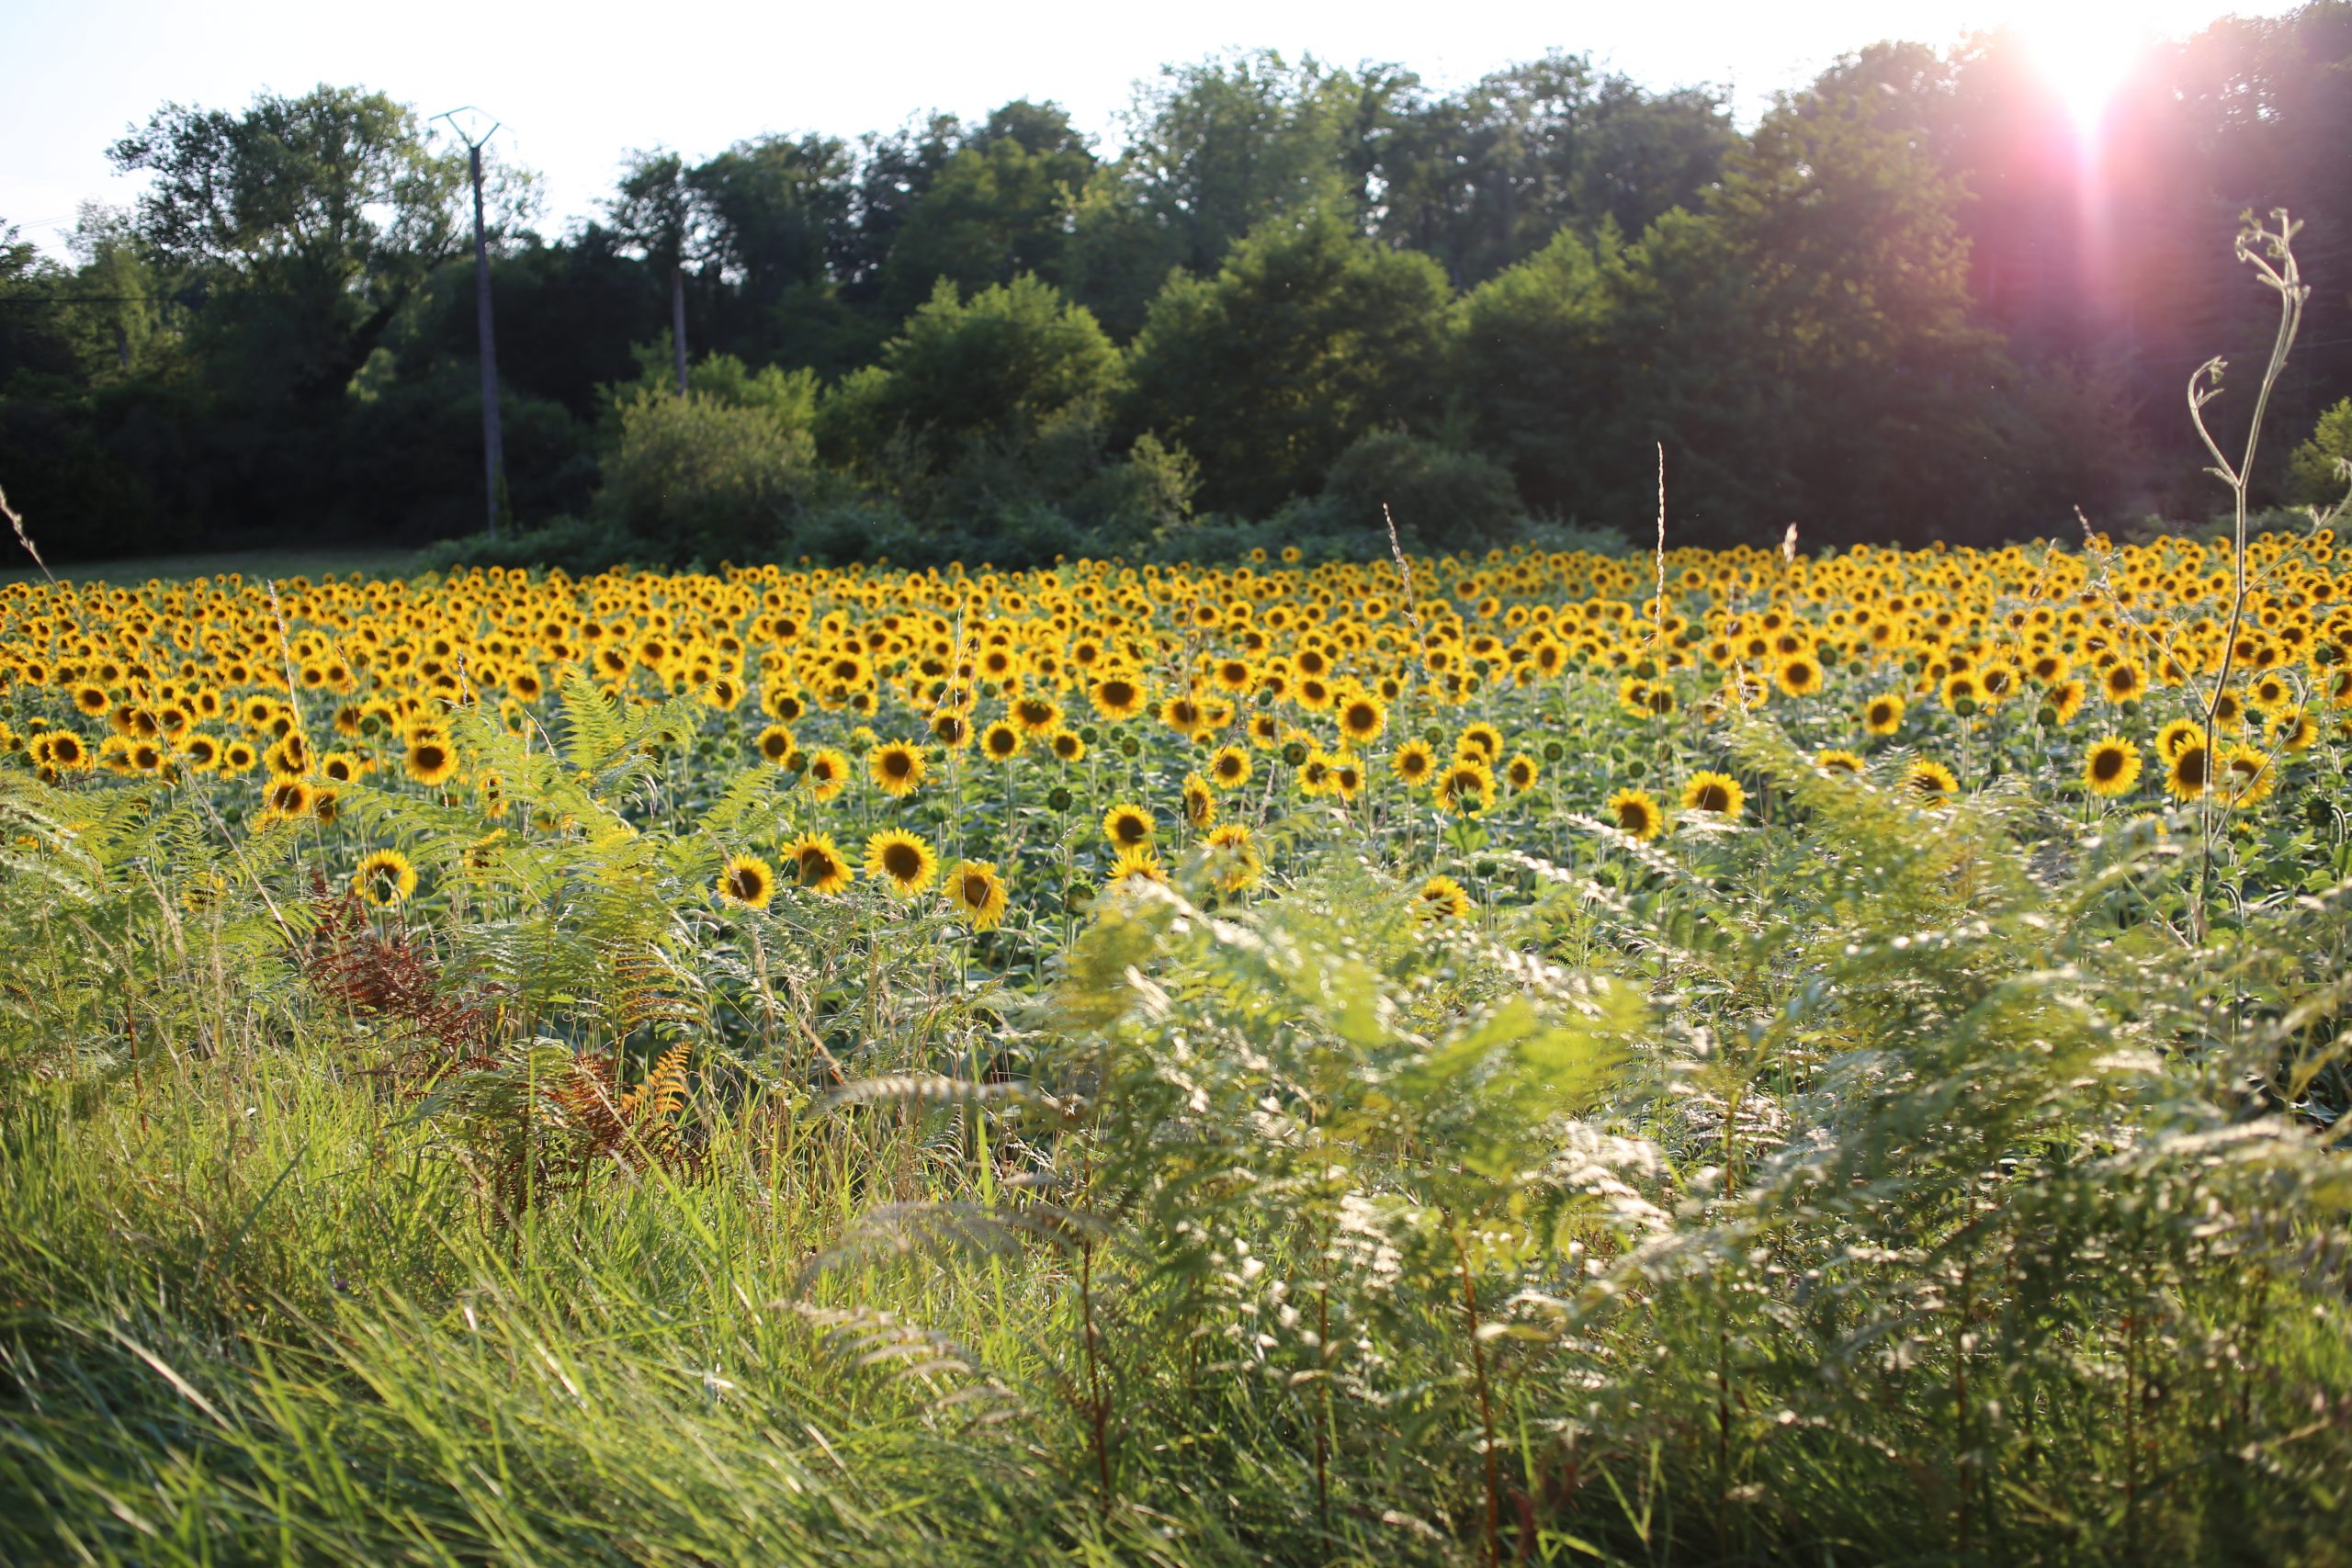 Just like sunflower is a natural factory transforming solar energy into chemically held energy of sunflower oil, Israel could be a natural hydrogen-producing economy